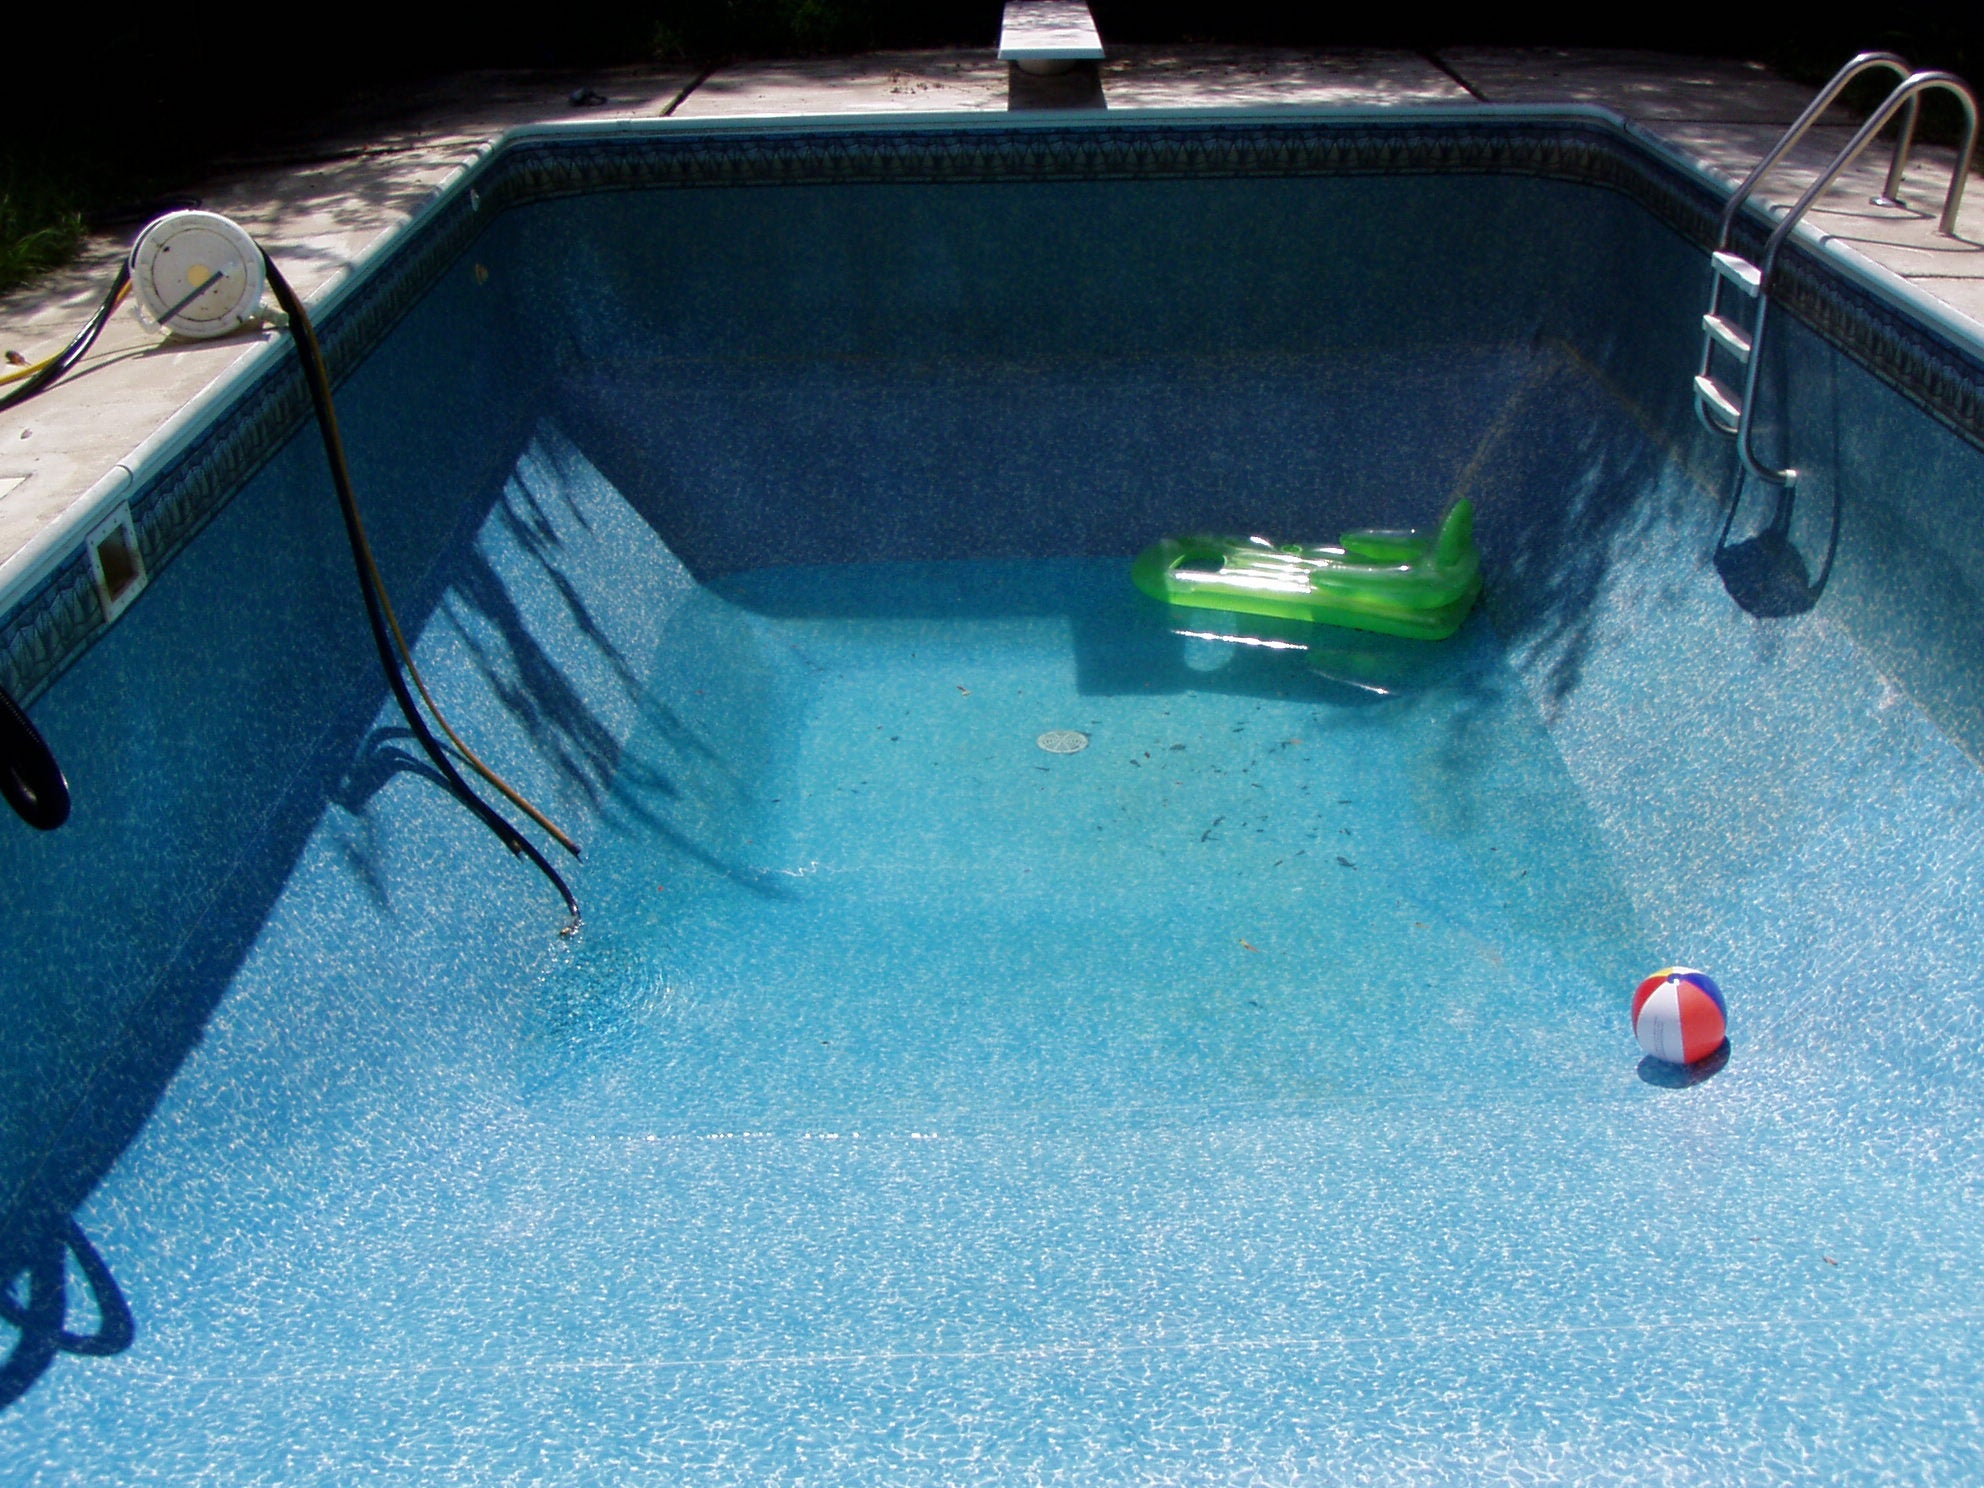 Should I Drain My Pool And Start Over?